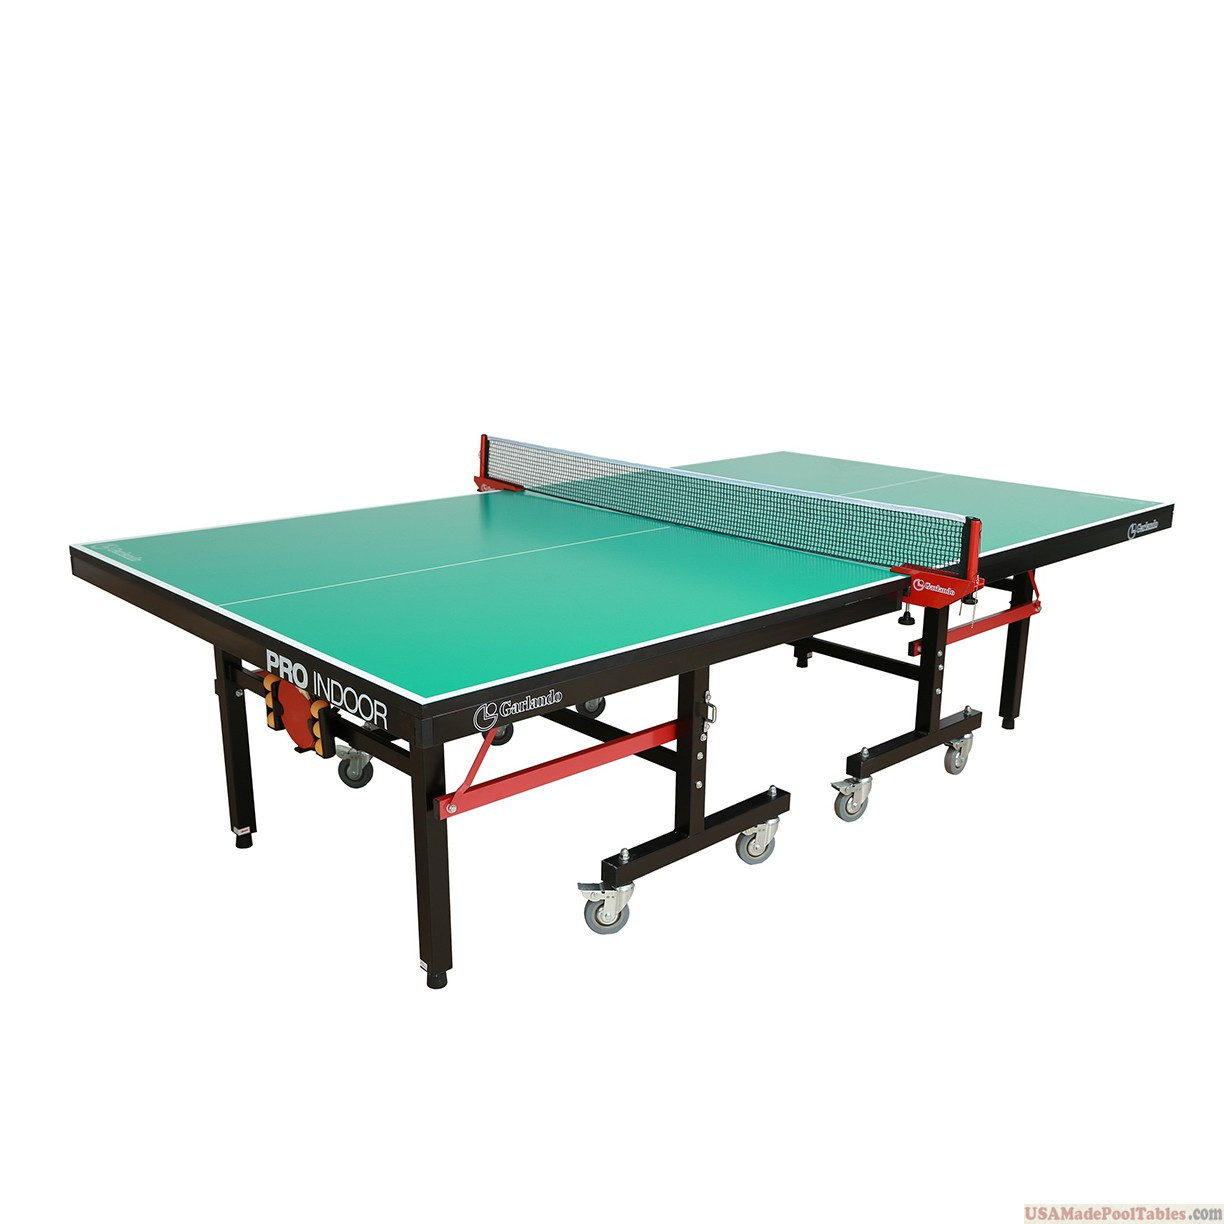 PRO INDOOR TABLE TENNIS TABLE